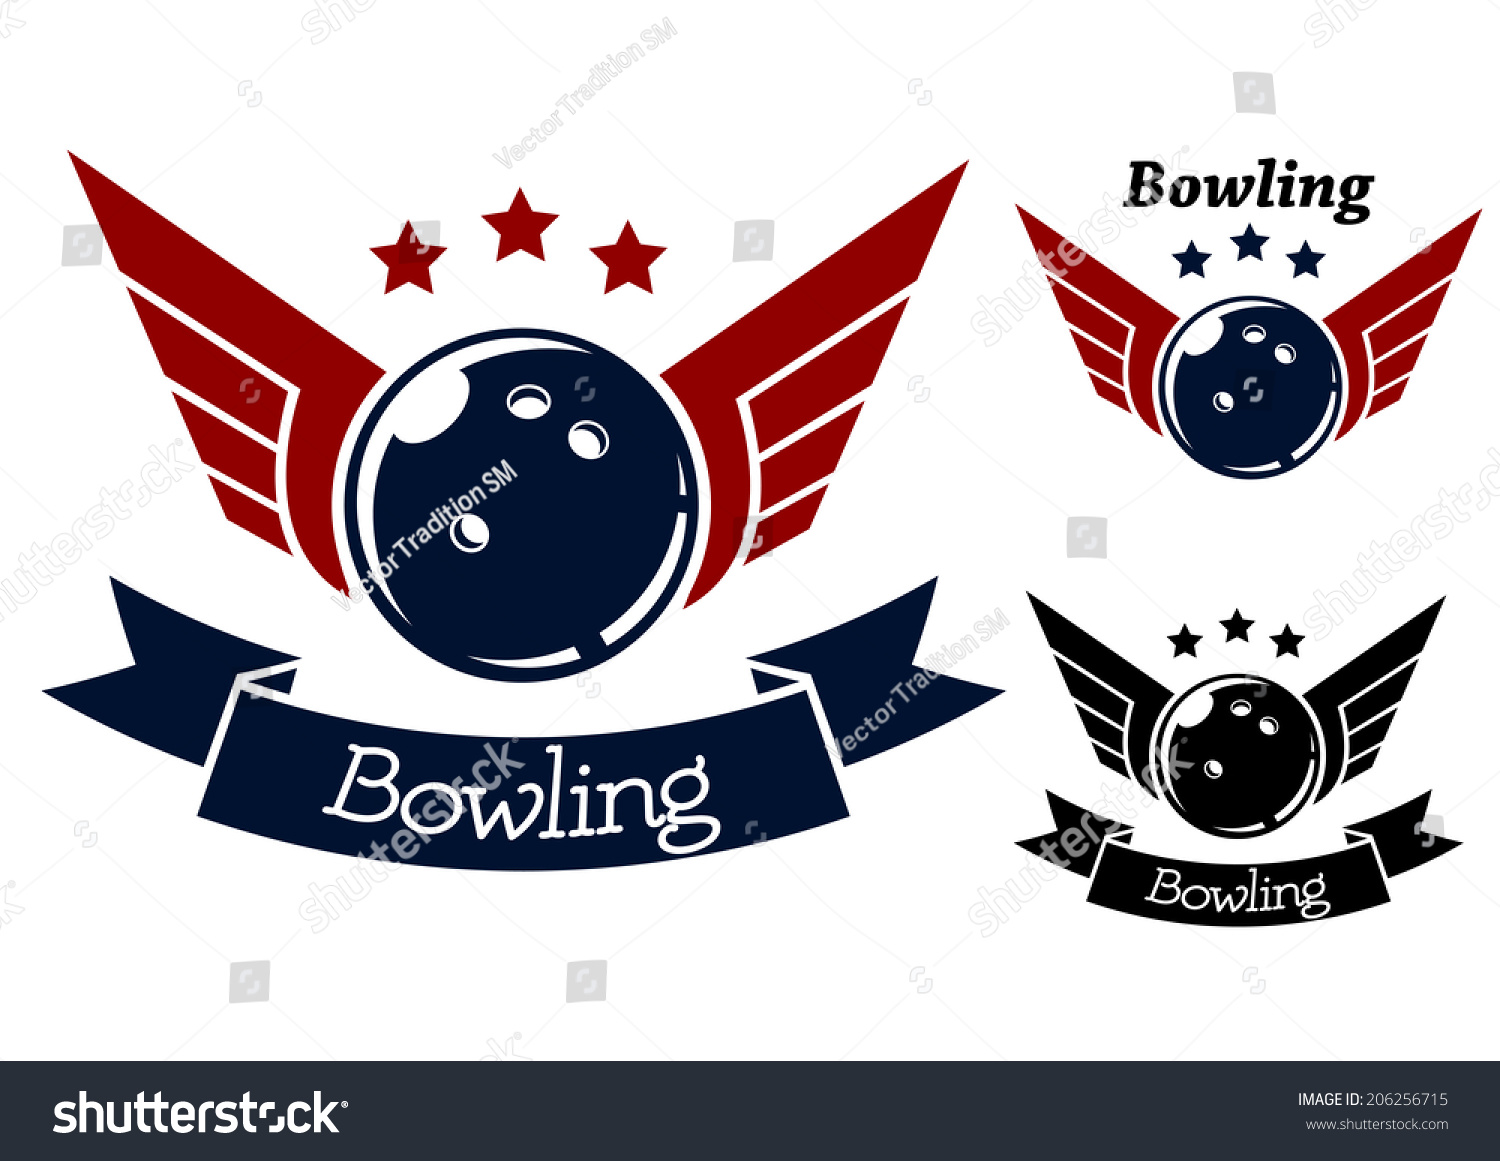 Bowling Symbols With Wings For Sporting Logo Or Heraldry Design Stock ...